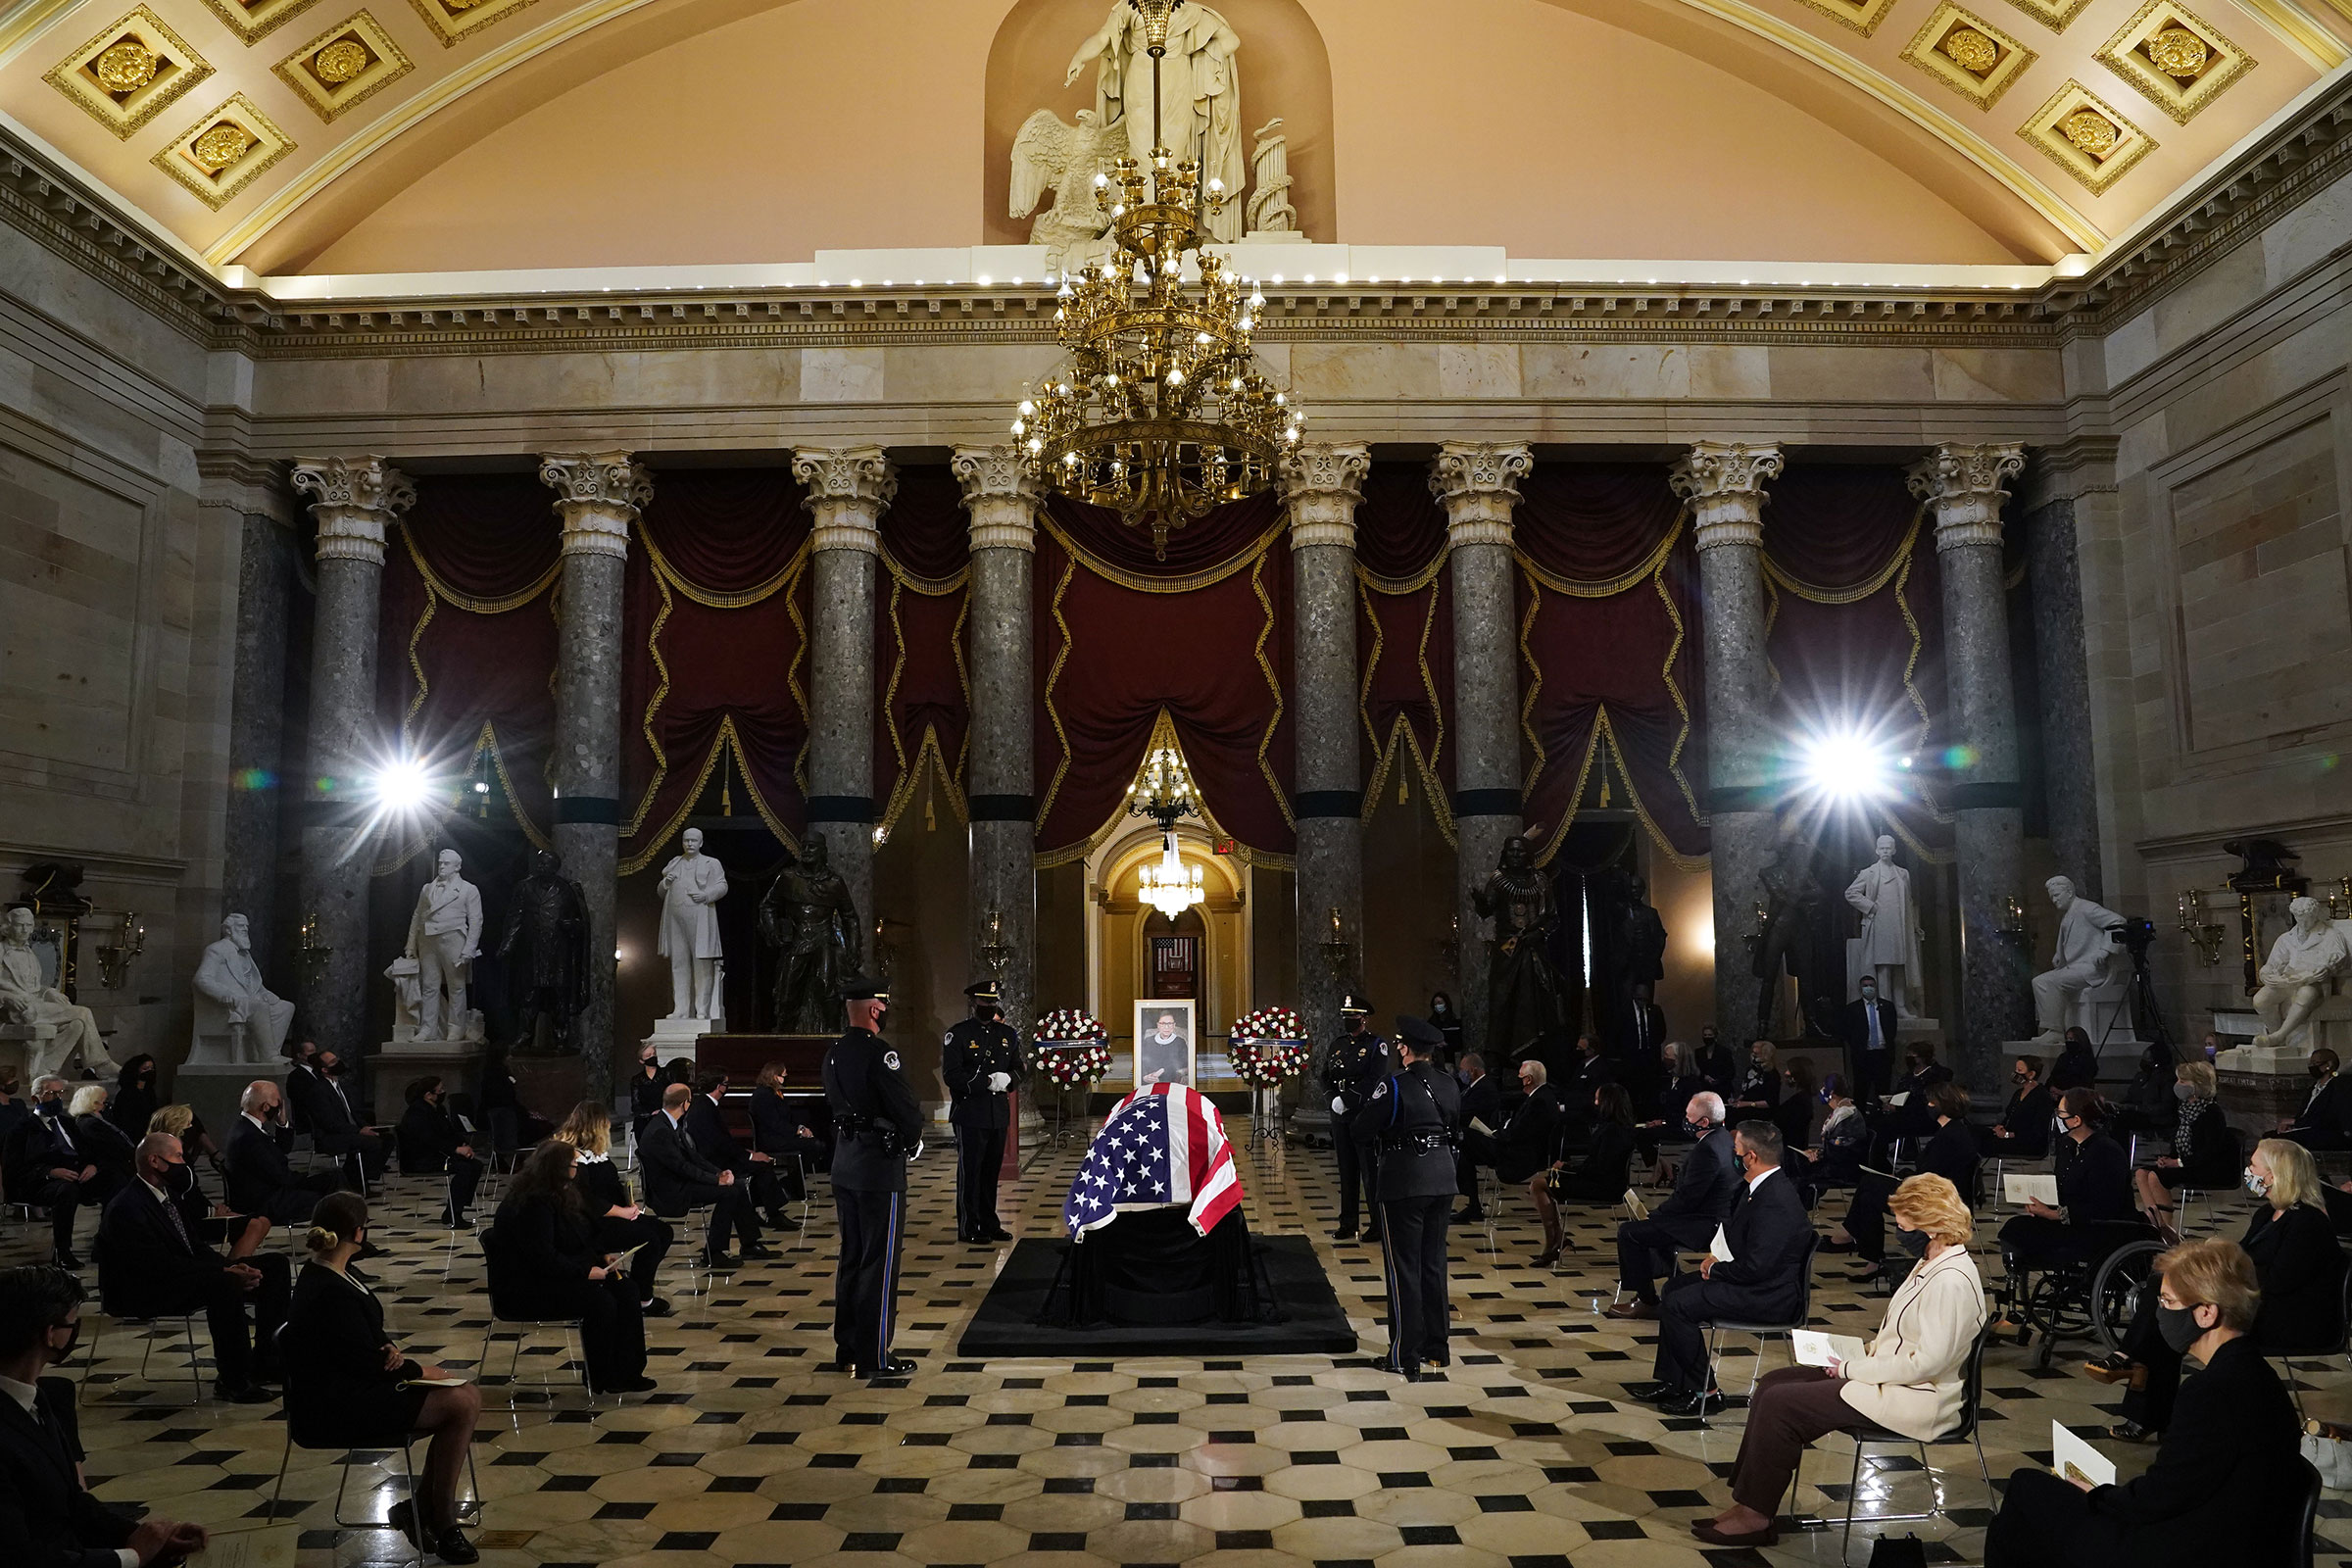 The flag-draped casket of the late Associate Justice Ruth Bader Ginsburg lies in state in Statuary Hall of the US Capitol during a memorial service in her honor on Sept. 25, 2020.